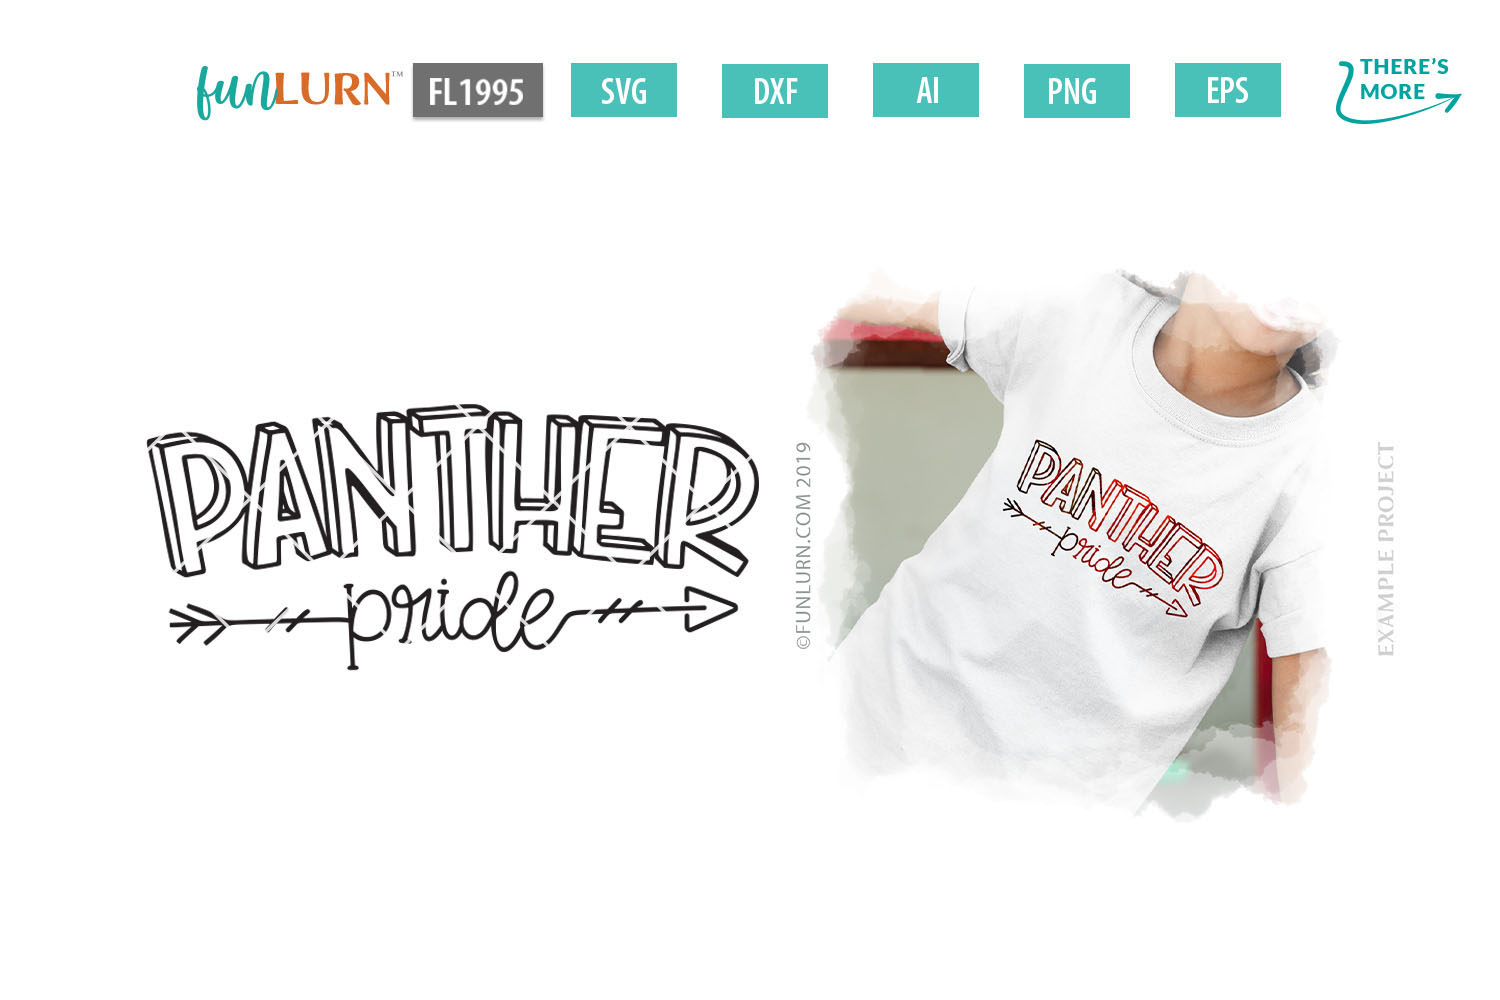 Panther Pride Team SVG Cut File example image 1